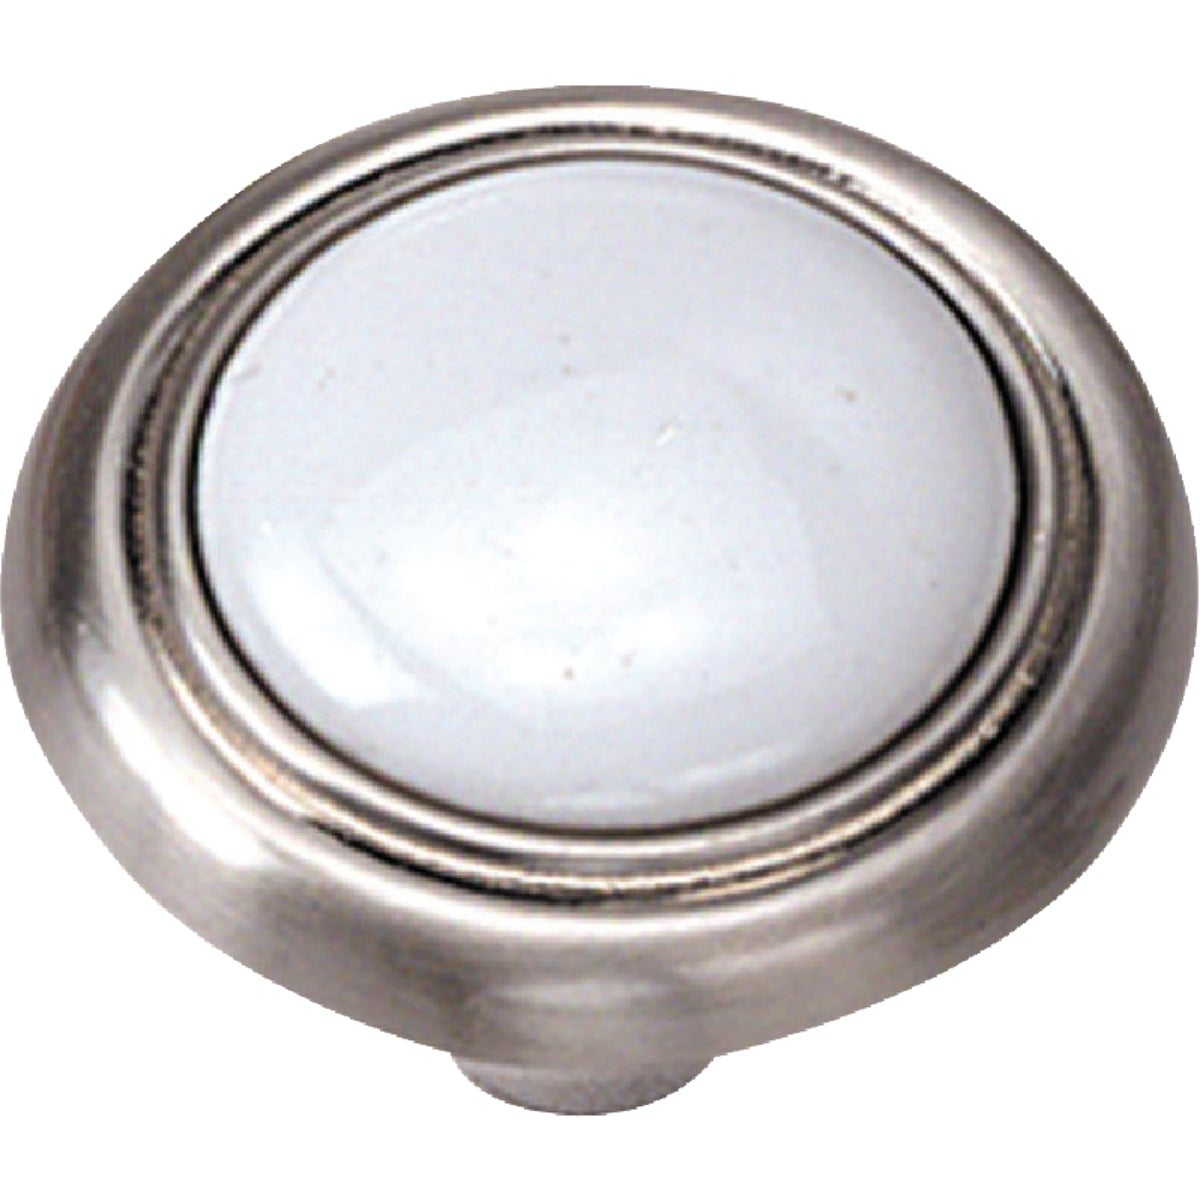 1-1/4 WHT CHROME KNOB - 15438 by Laurey Co